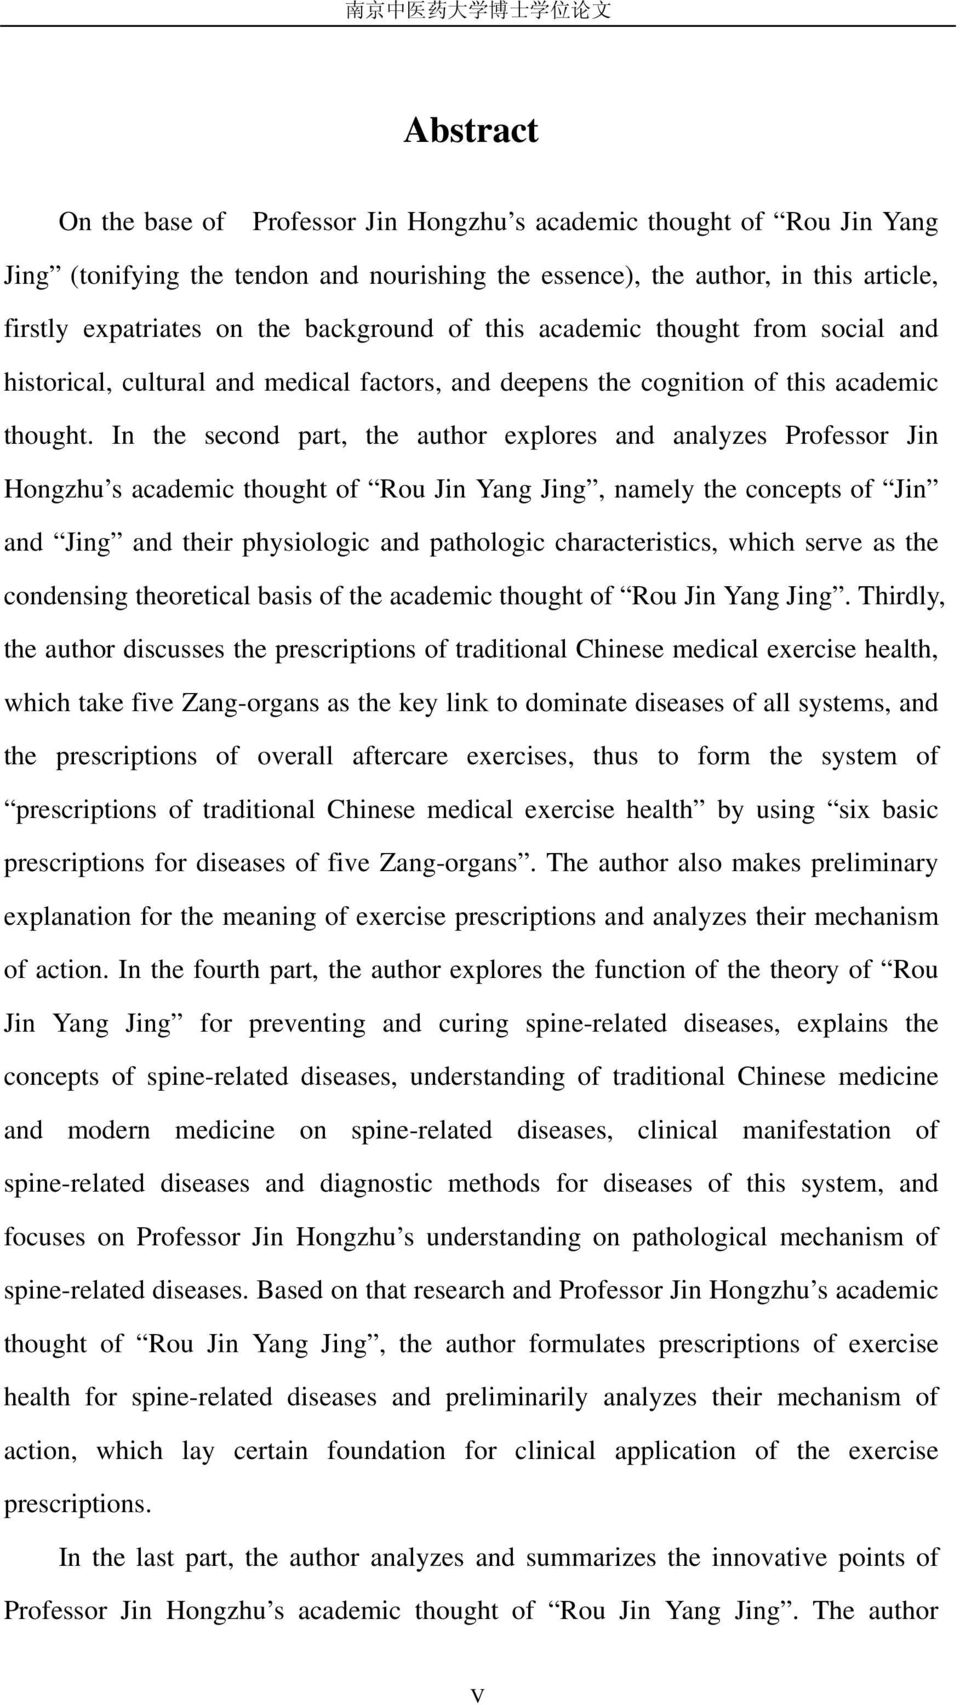 In the second part, the author explores and analyzes Professor Jin Hongzhu s academic thought of Rou Jin Yang Jing, namely the concepts of Jin and Jing and their physiologic and pathologic